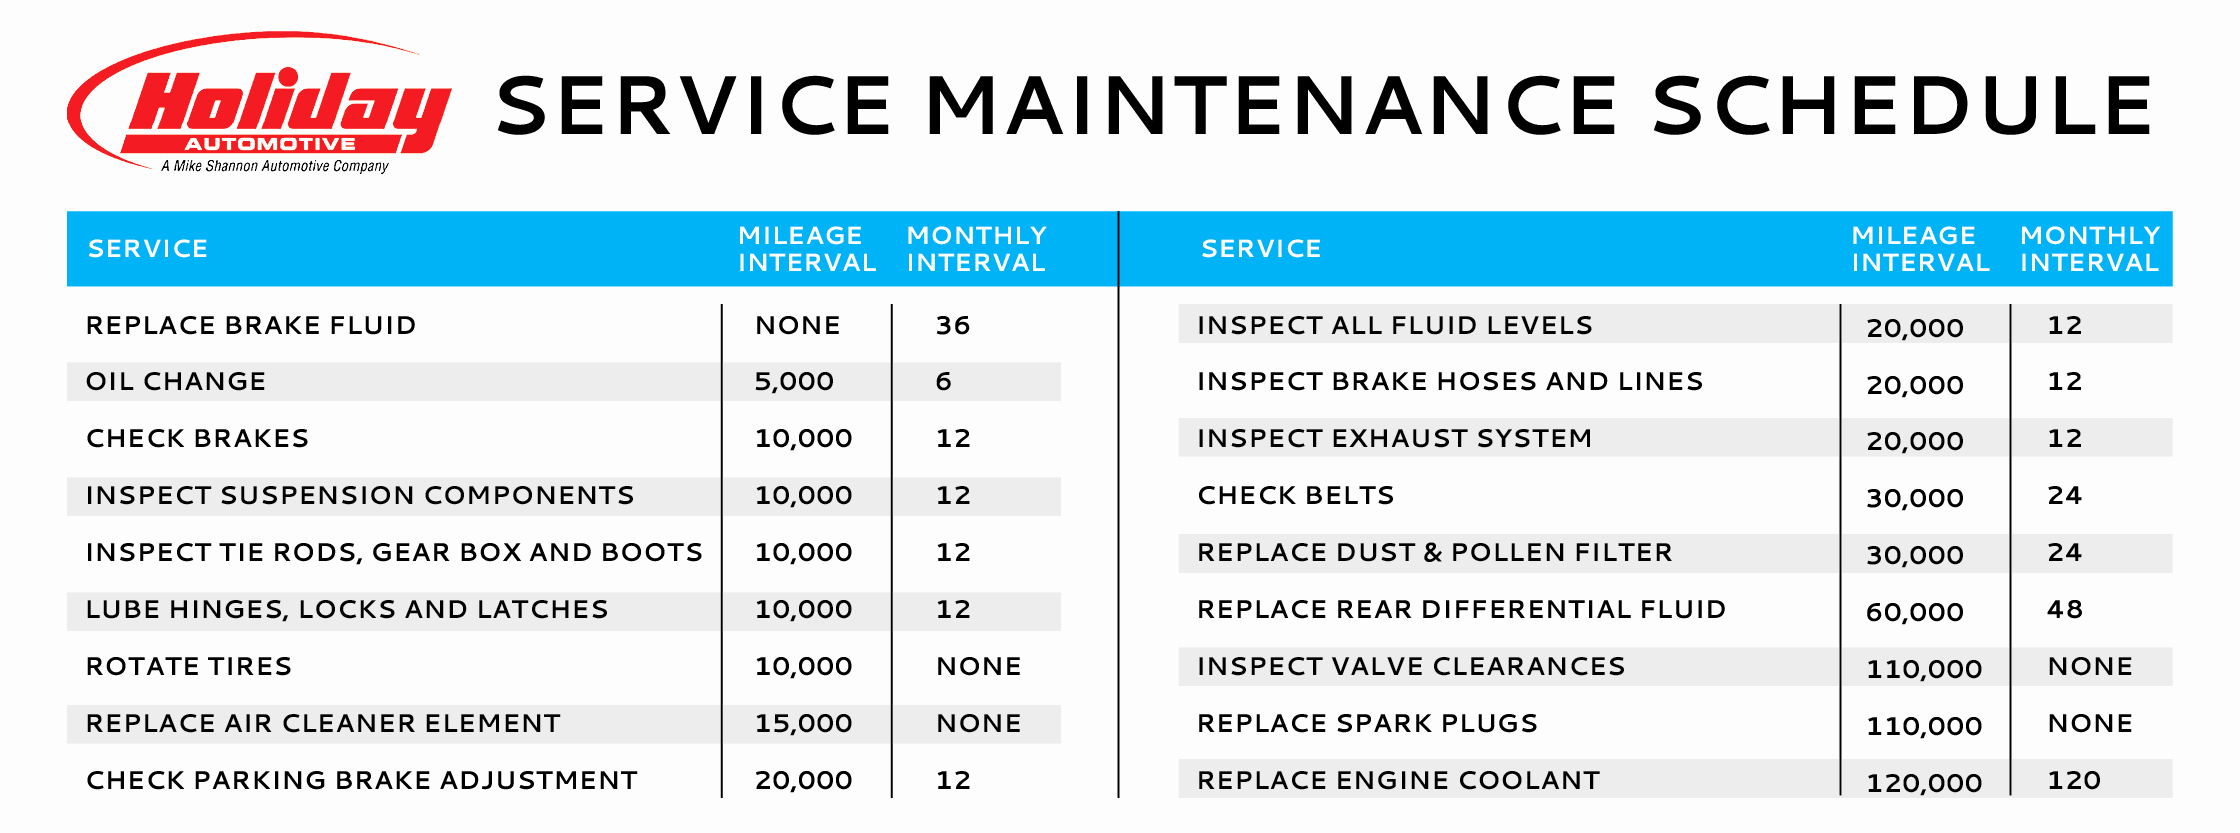 Car Maintenance Schedule Template Best Of Maintenance Schedule 0516 D Holiday Automotive